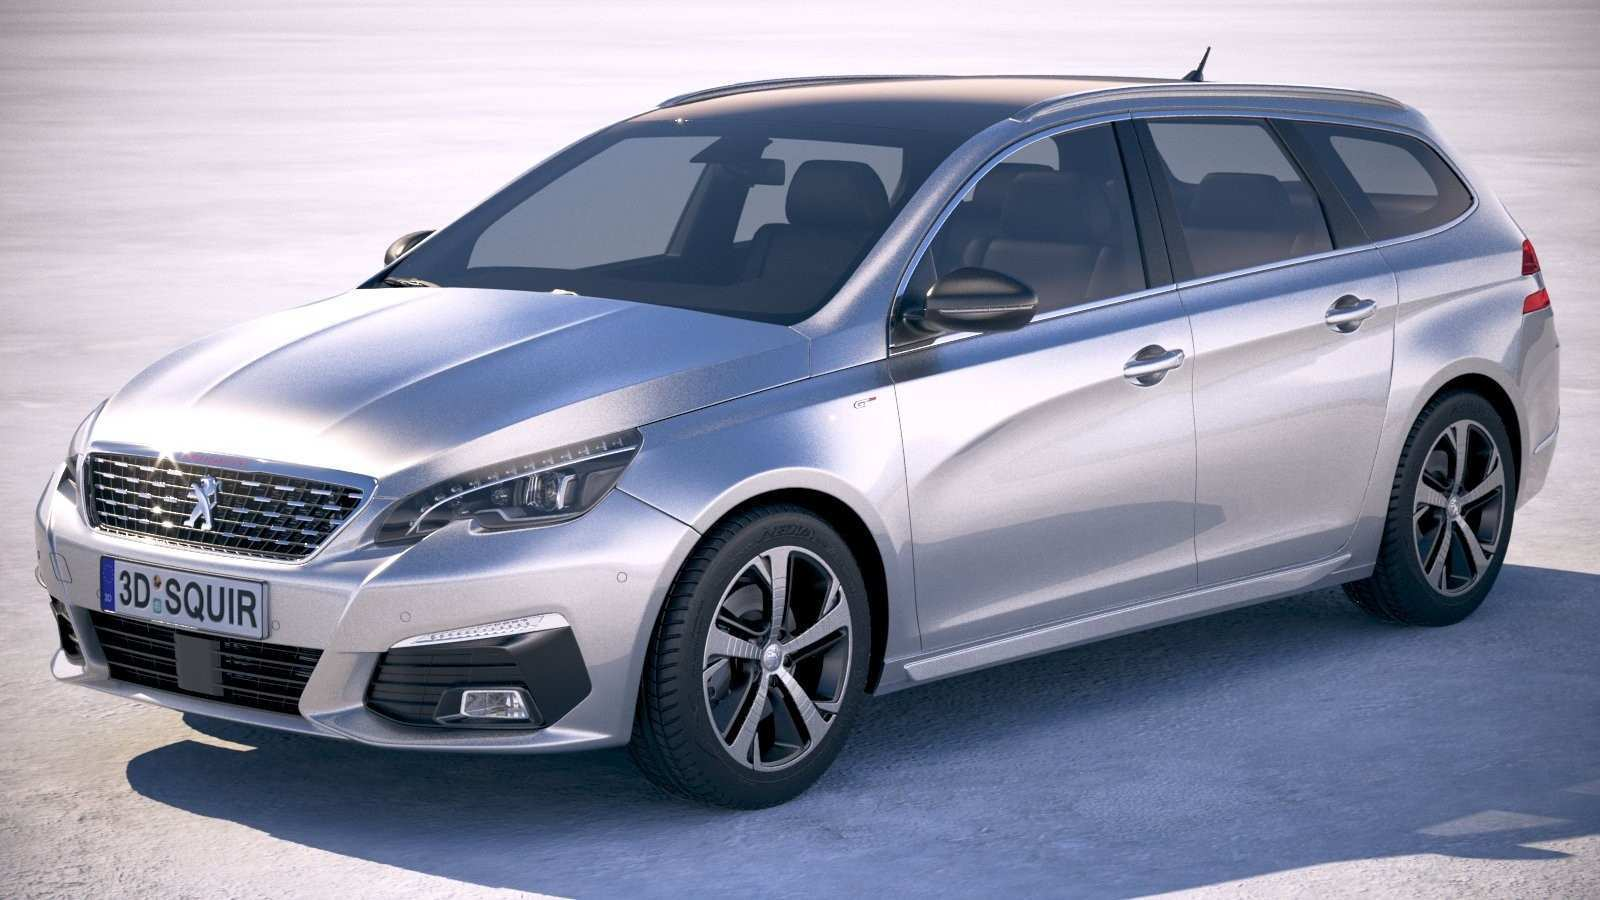 75 Best Review 2019 Peugeot 308 Concept with 2019 Peugeot 308